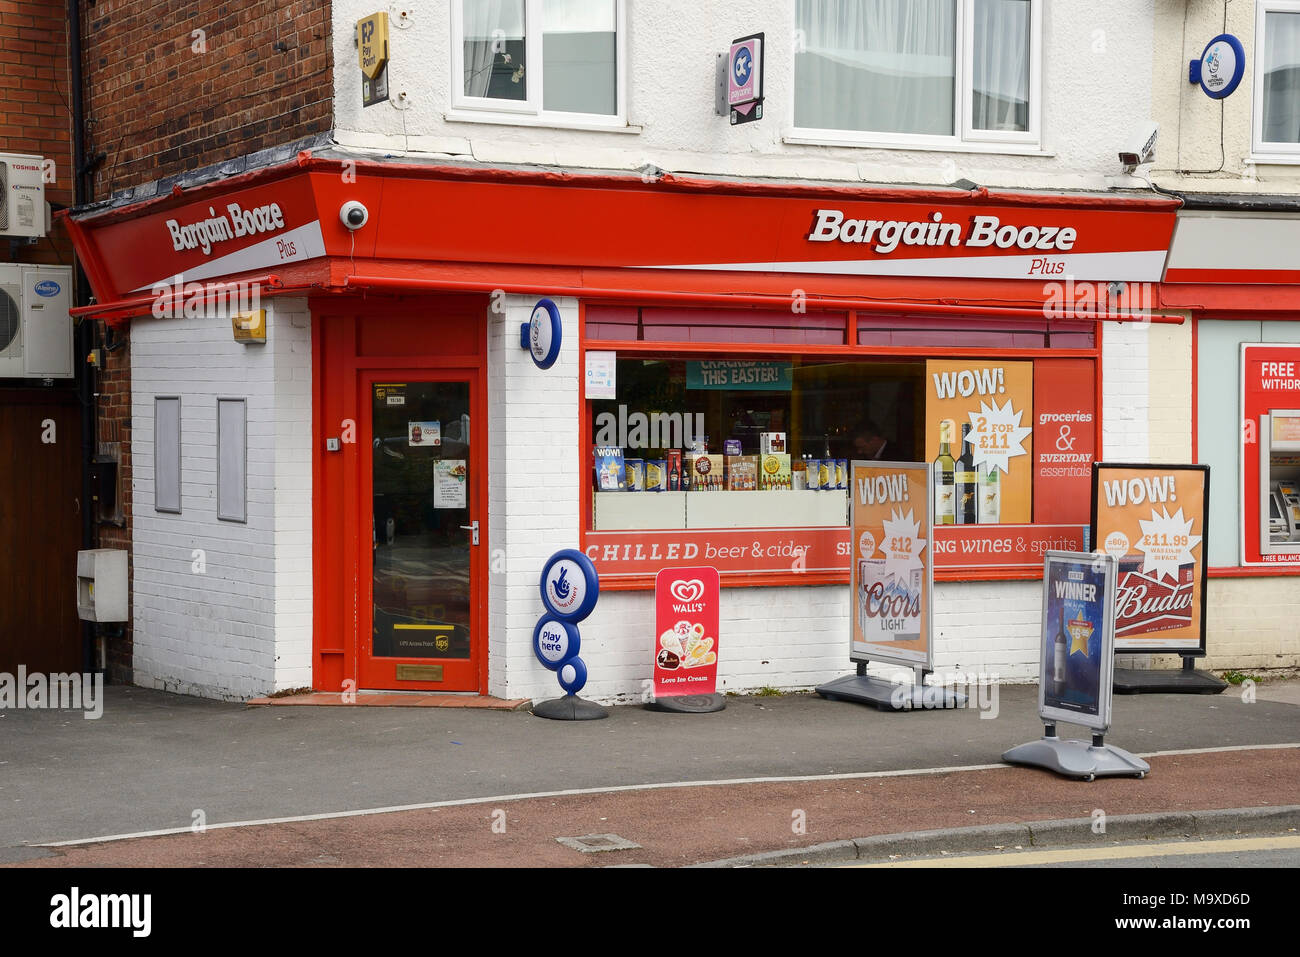 Bargain Booze store in Chester, UK. - Stock Image